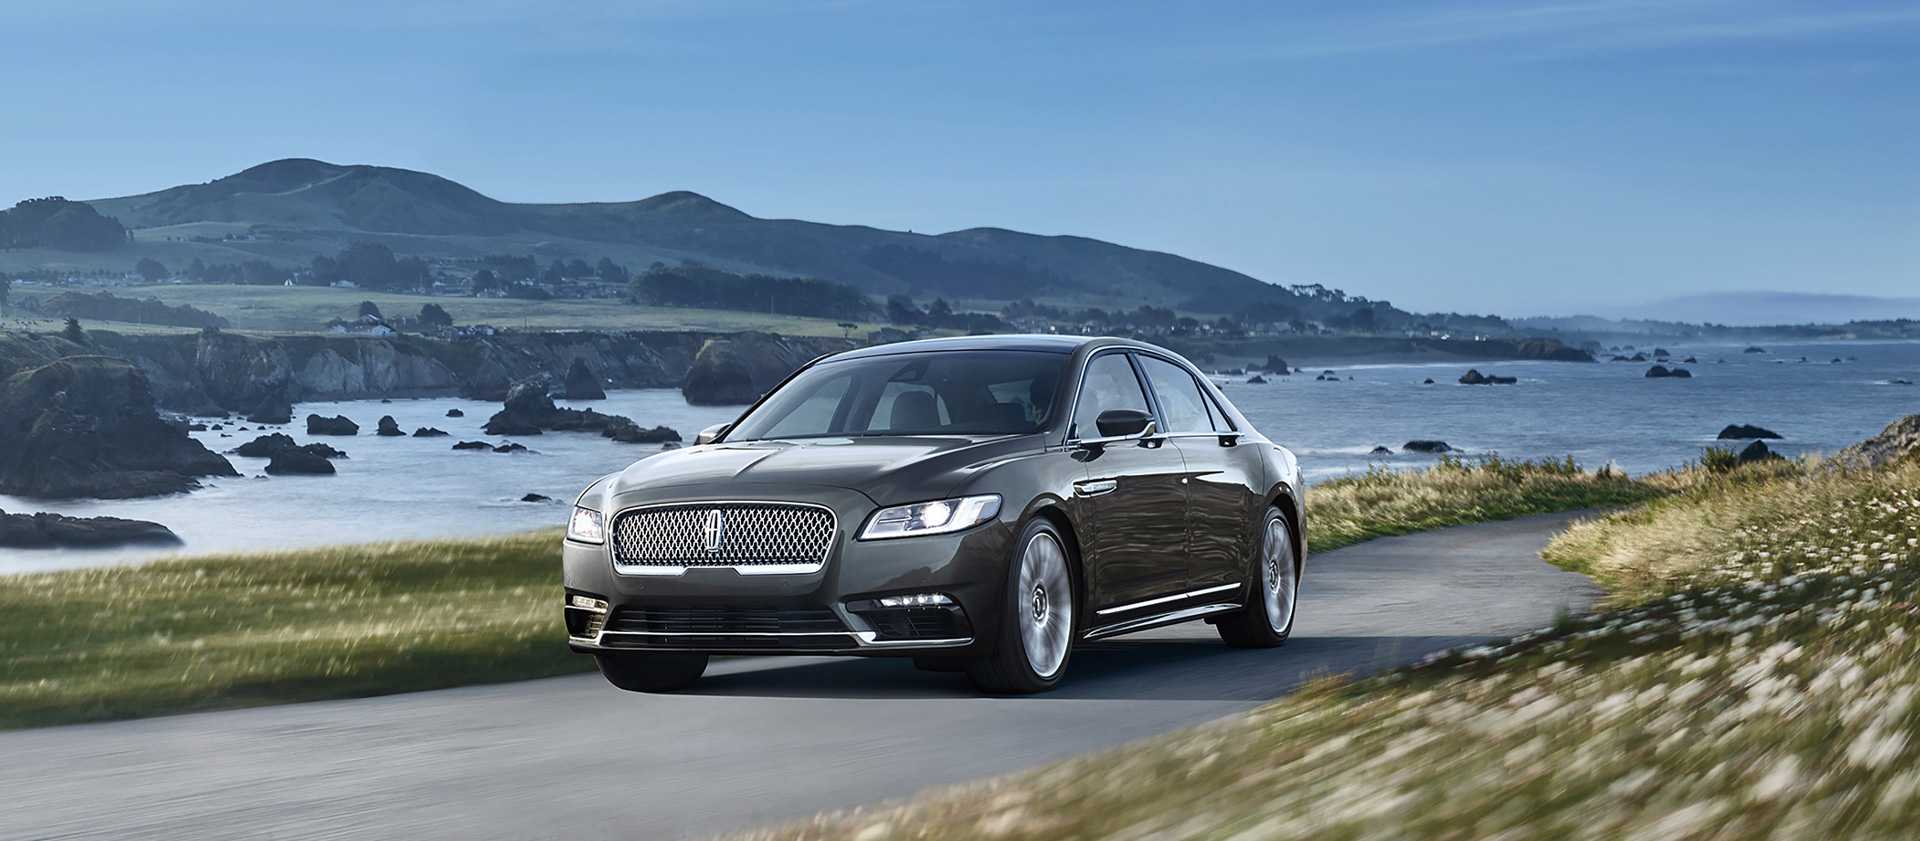 2020 Lincoln Continental - Driver Side View